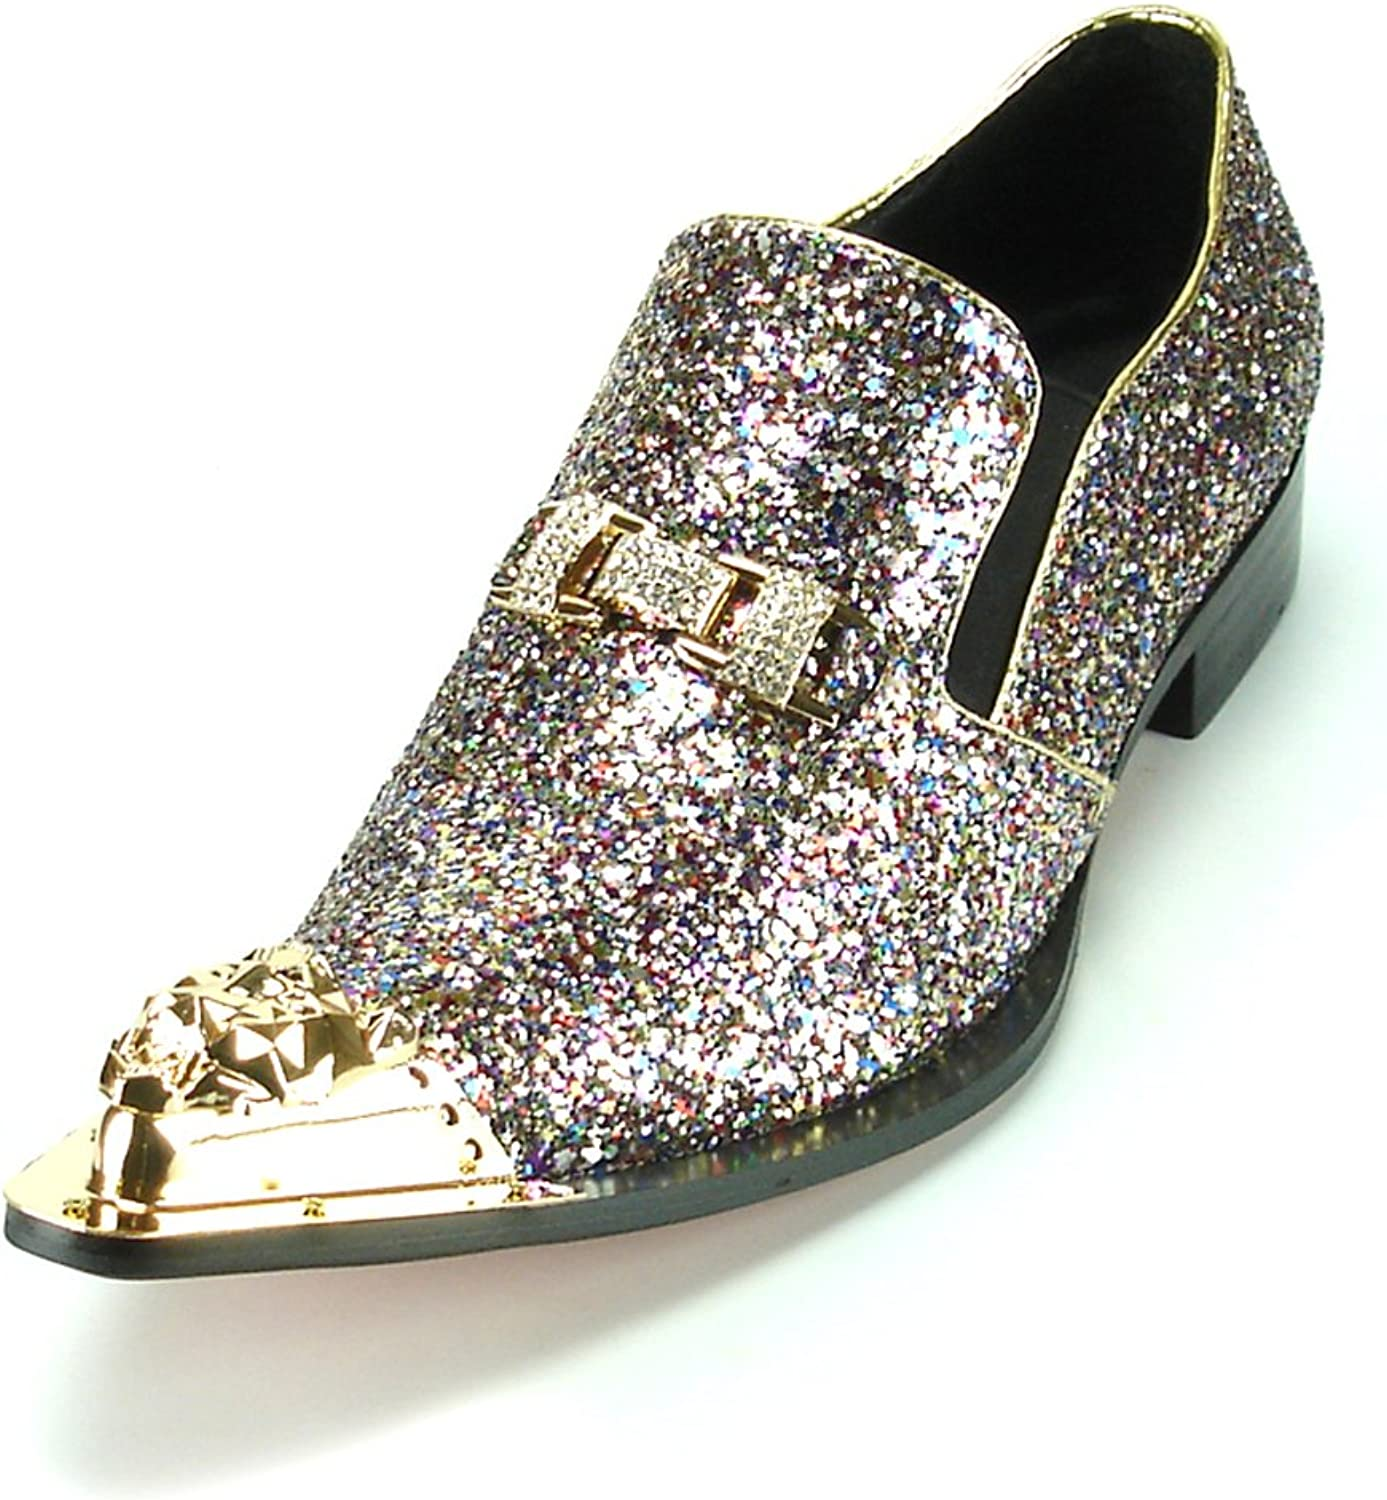 Fiesso by Aurelio Garcia FI-7072 Silver Glitter with gold Ornament and Metal TIP European shoes Designs